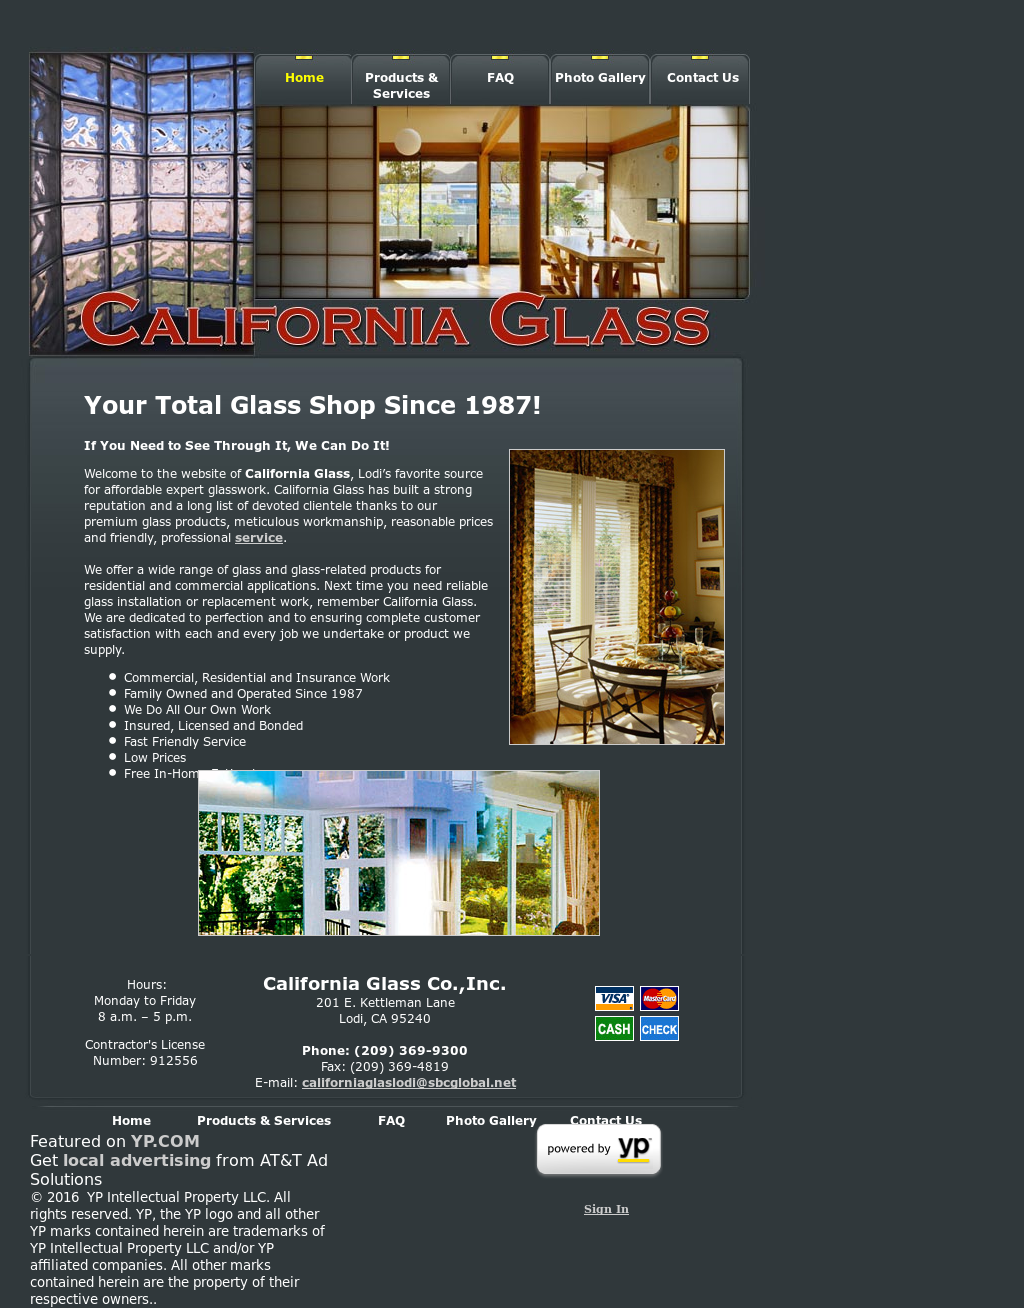 California Glass Competitors, Revenue and Employees - Owler